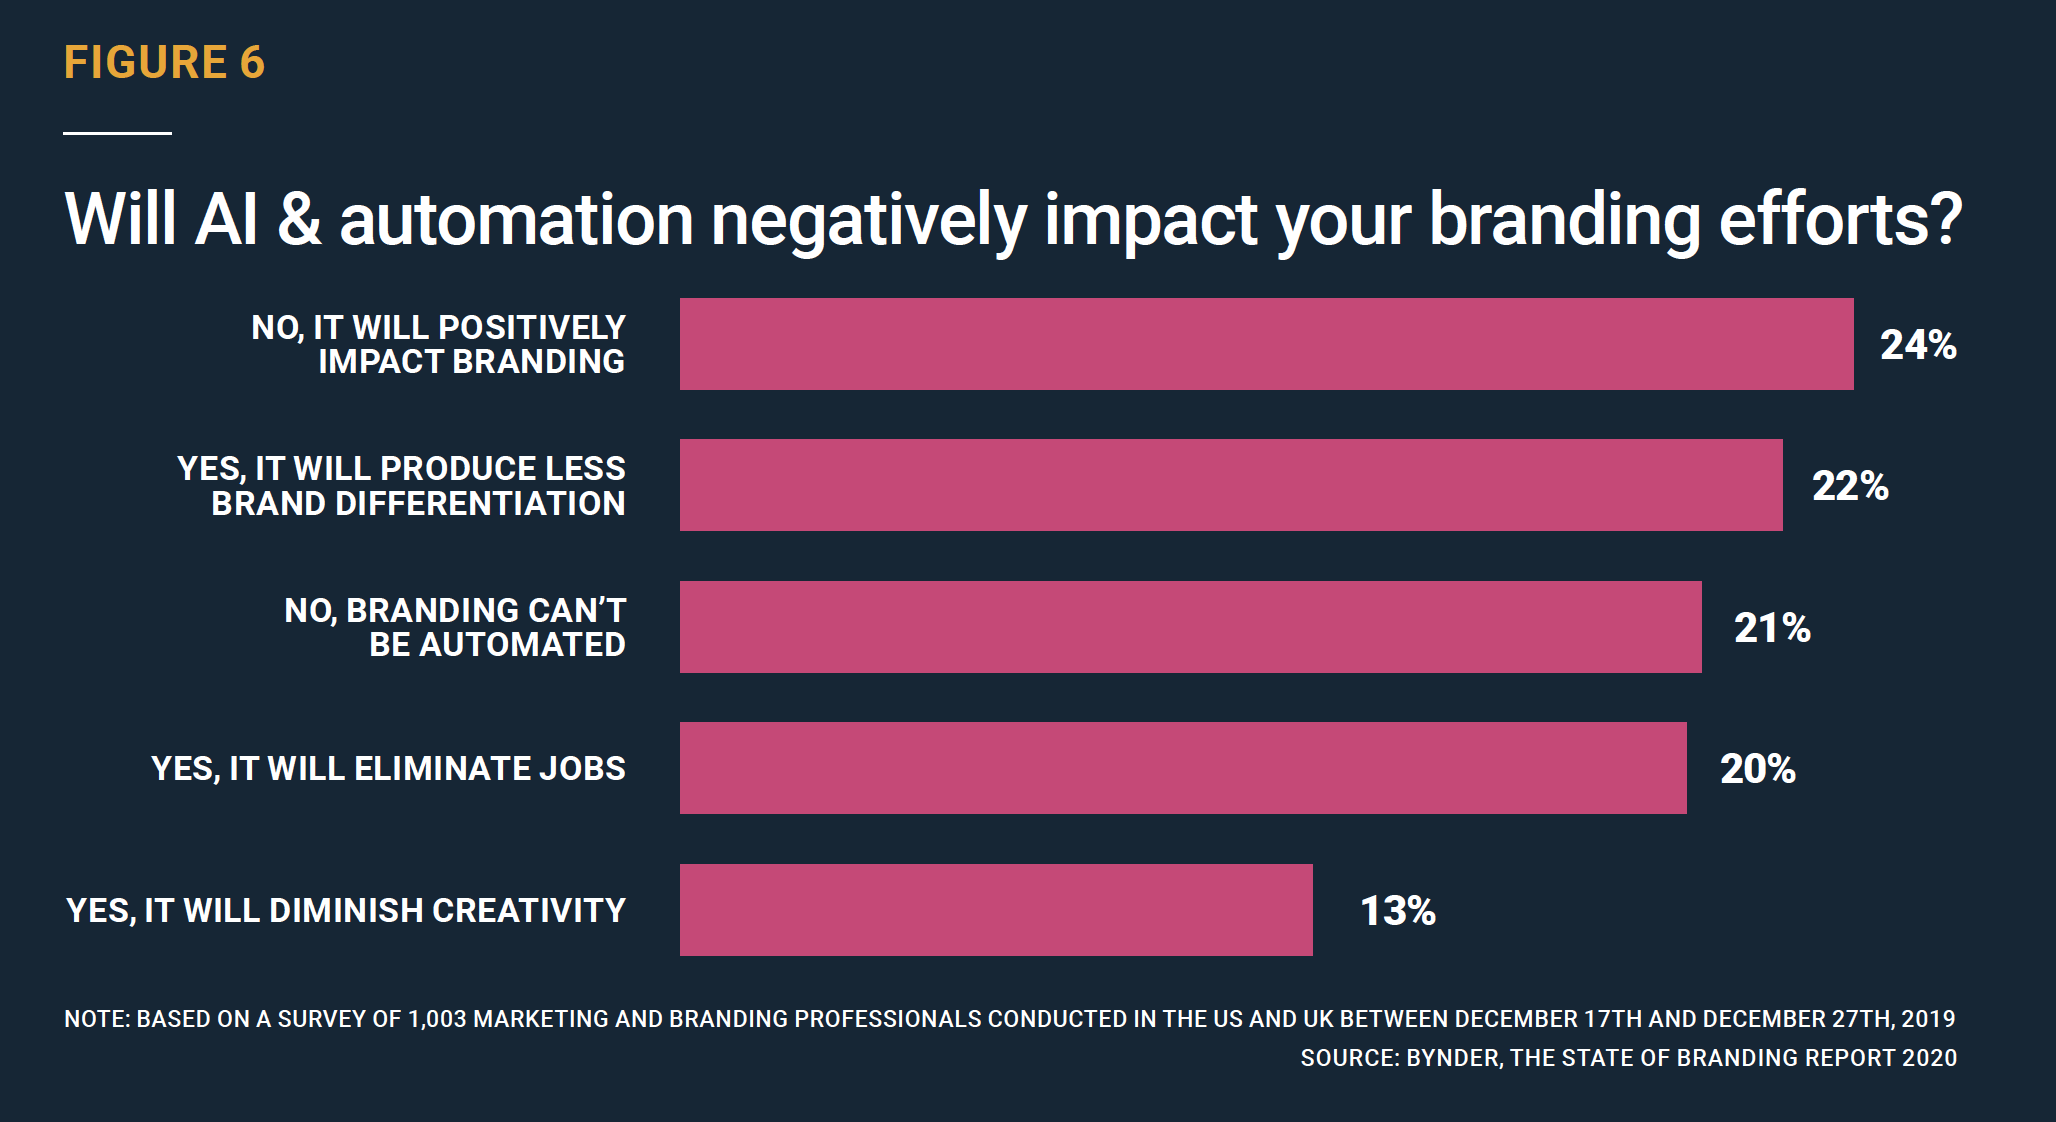 Will AI & automation negatively impact your branding efforts?